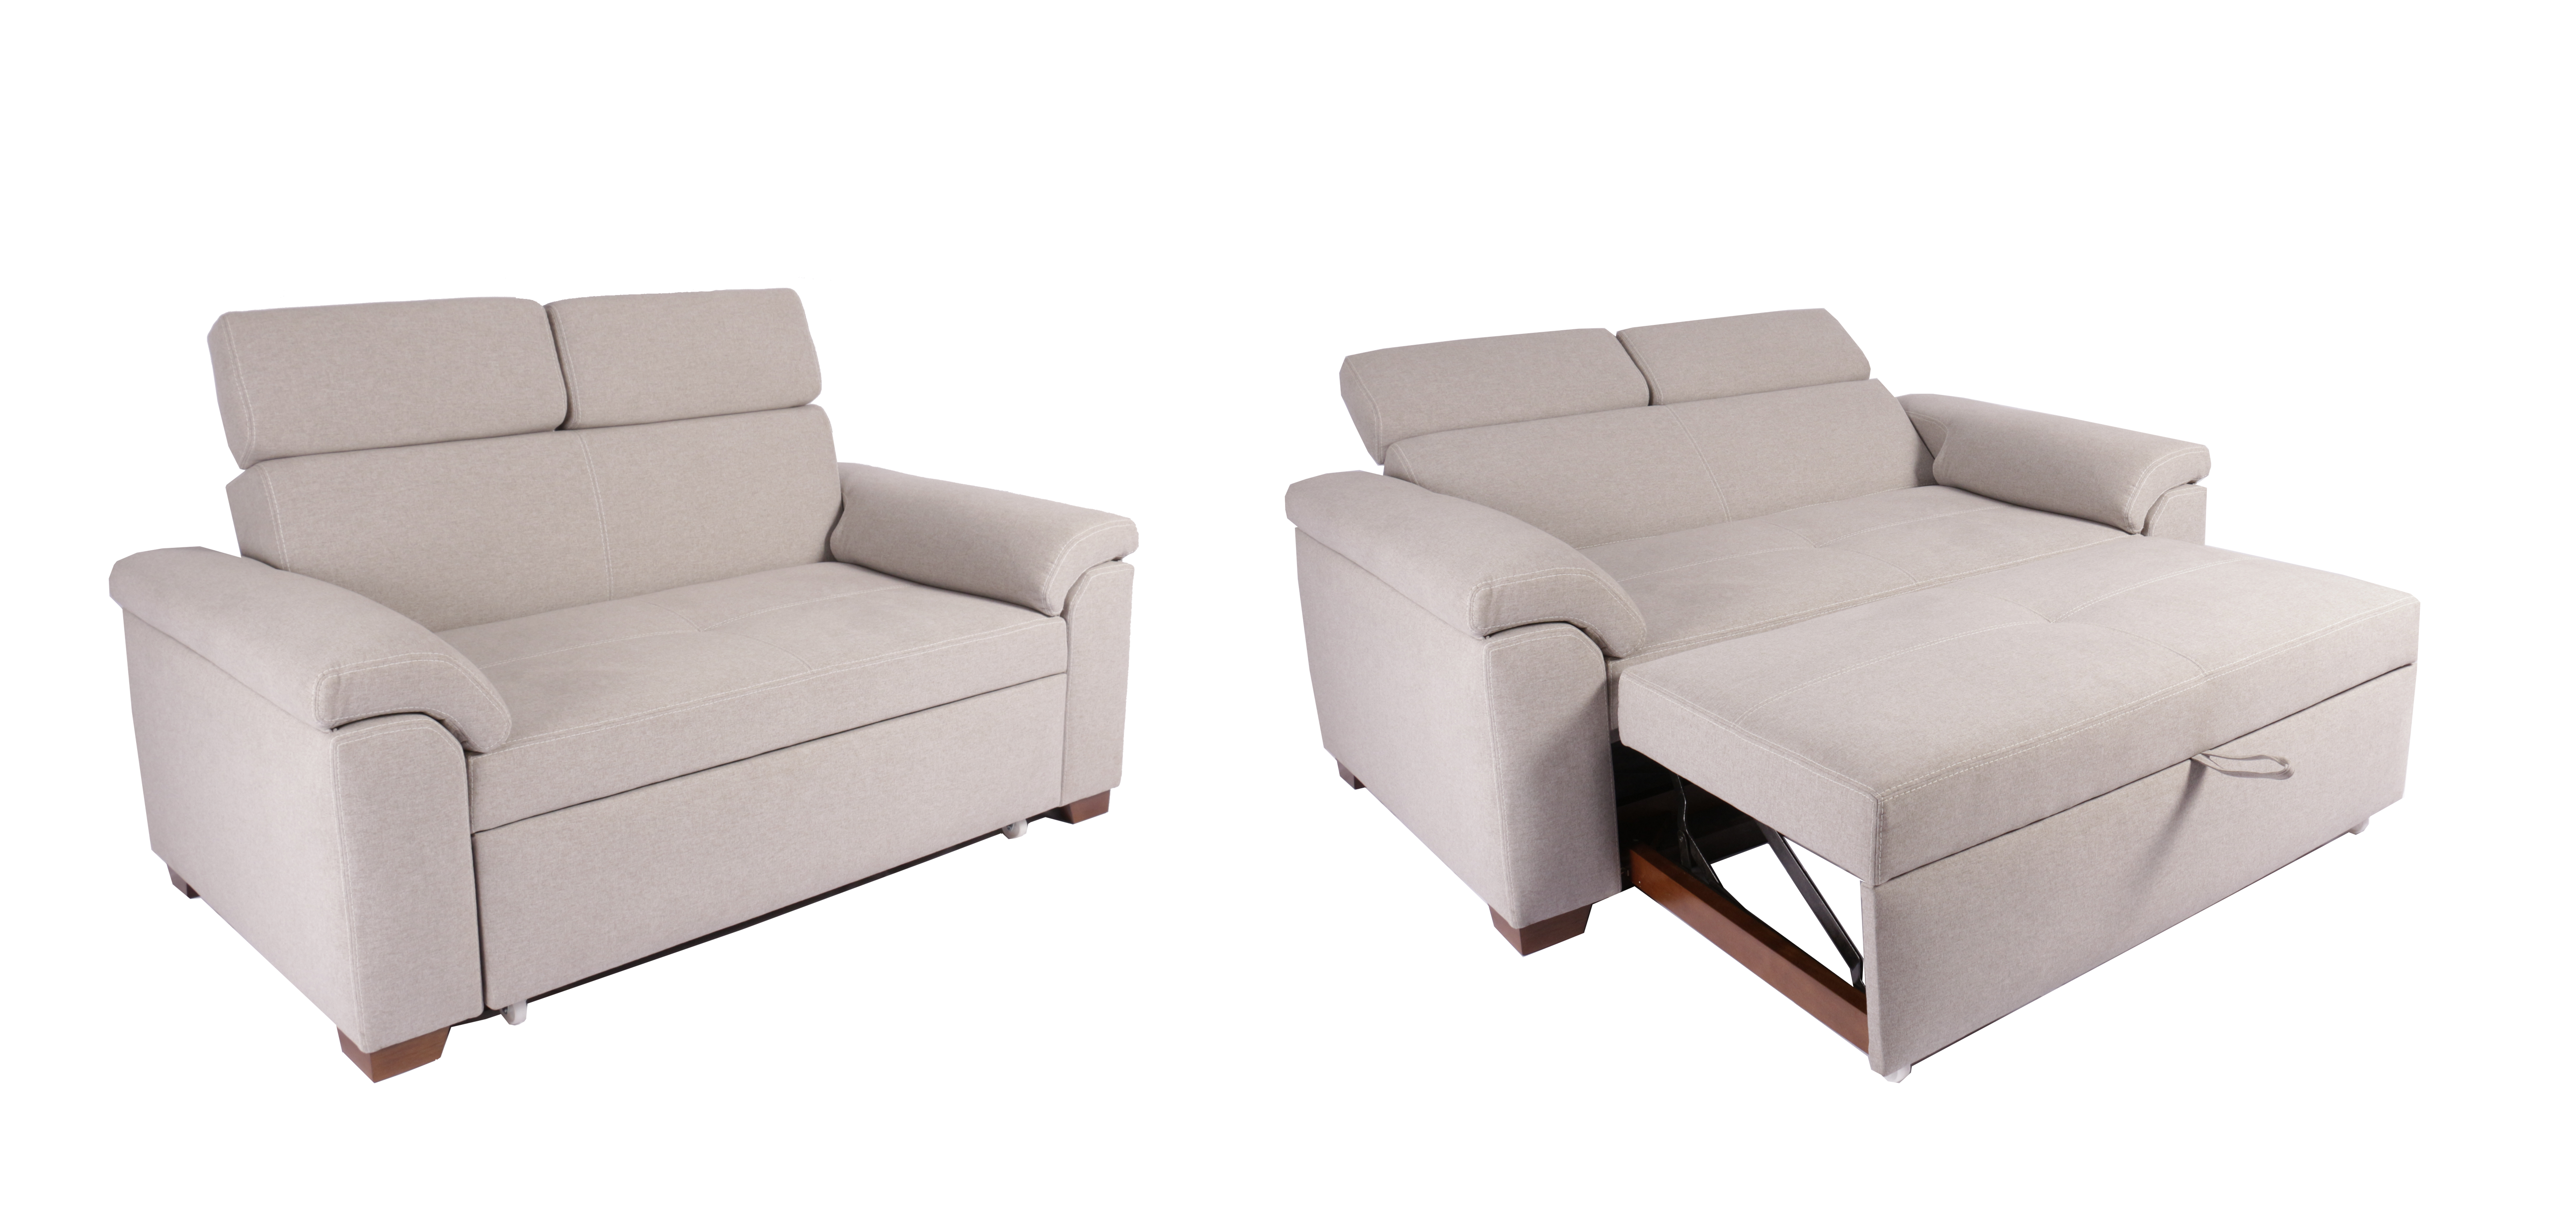 Sof s modulares muebles beity for Sofas modulares